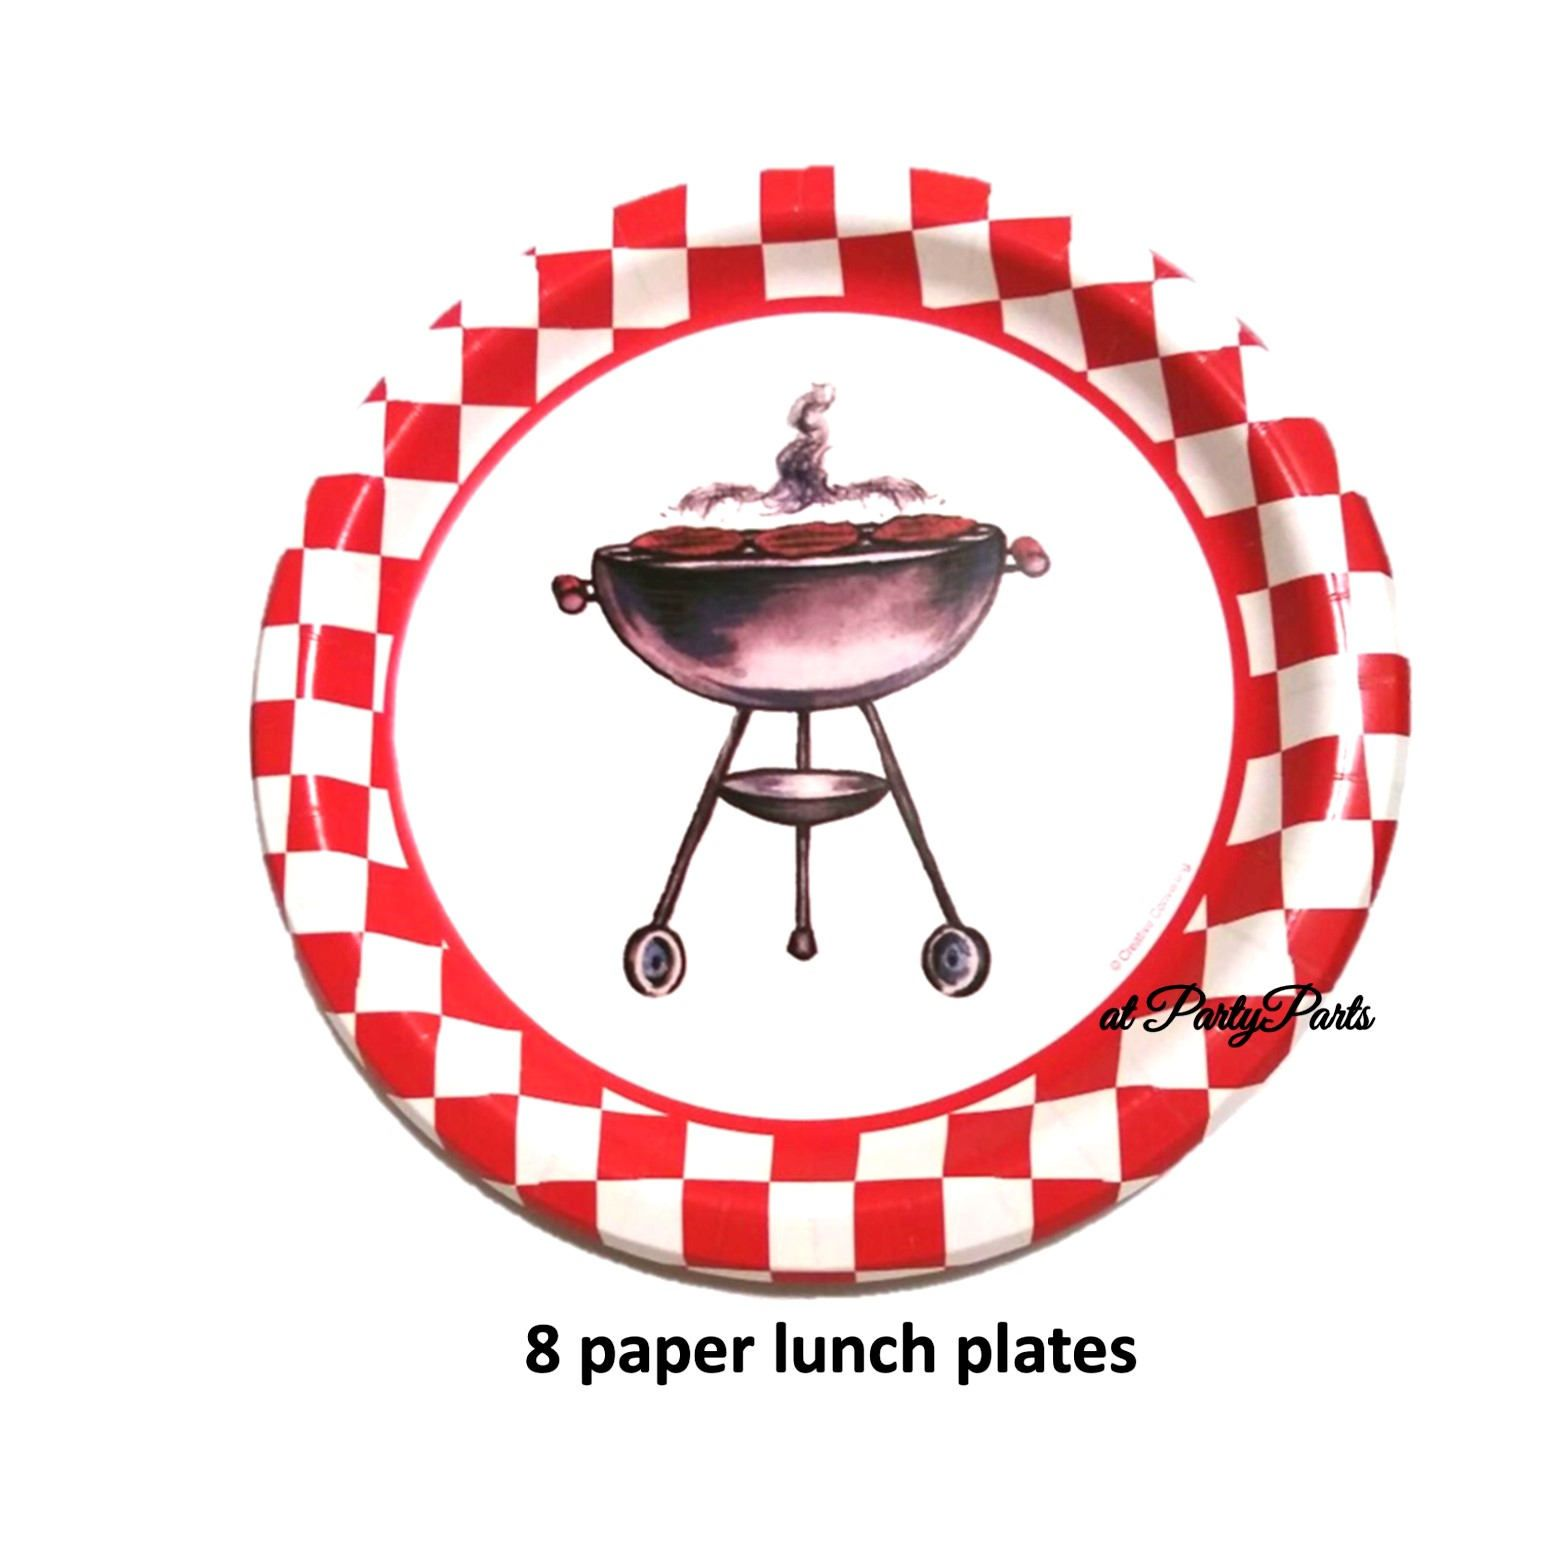 barbecue grill plates bbq 9 inch summer party 4th of July  sc 1 st  Pinterest & barbecue grill plates bbq 9 inch summer party 4th of July ...